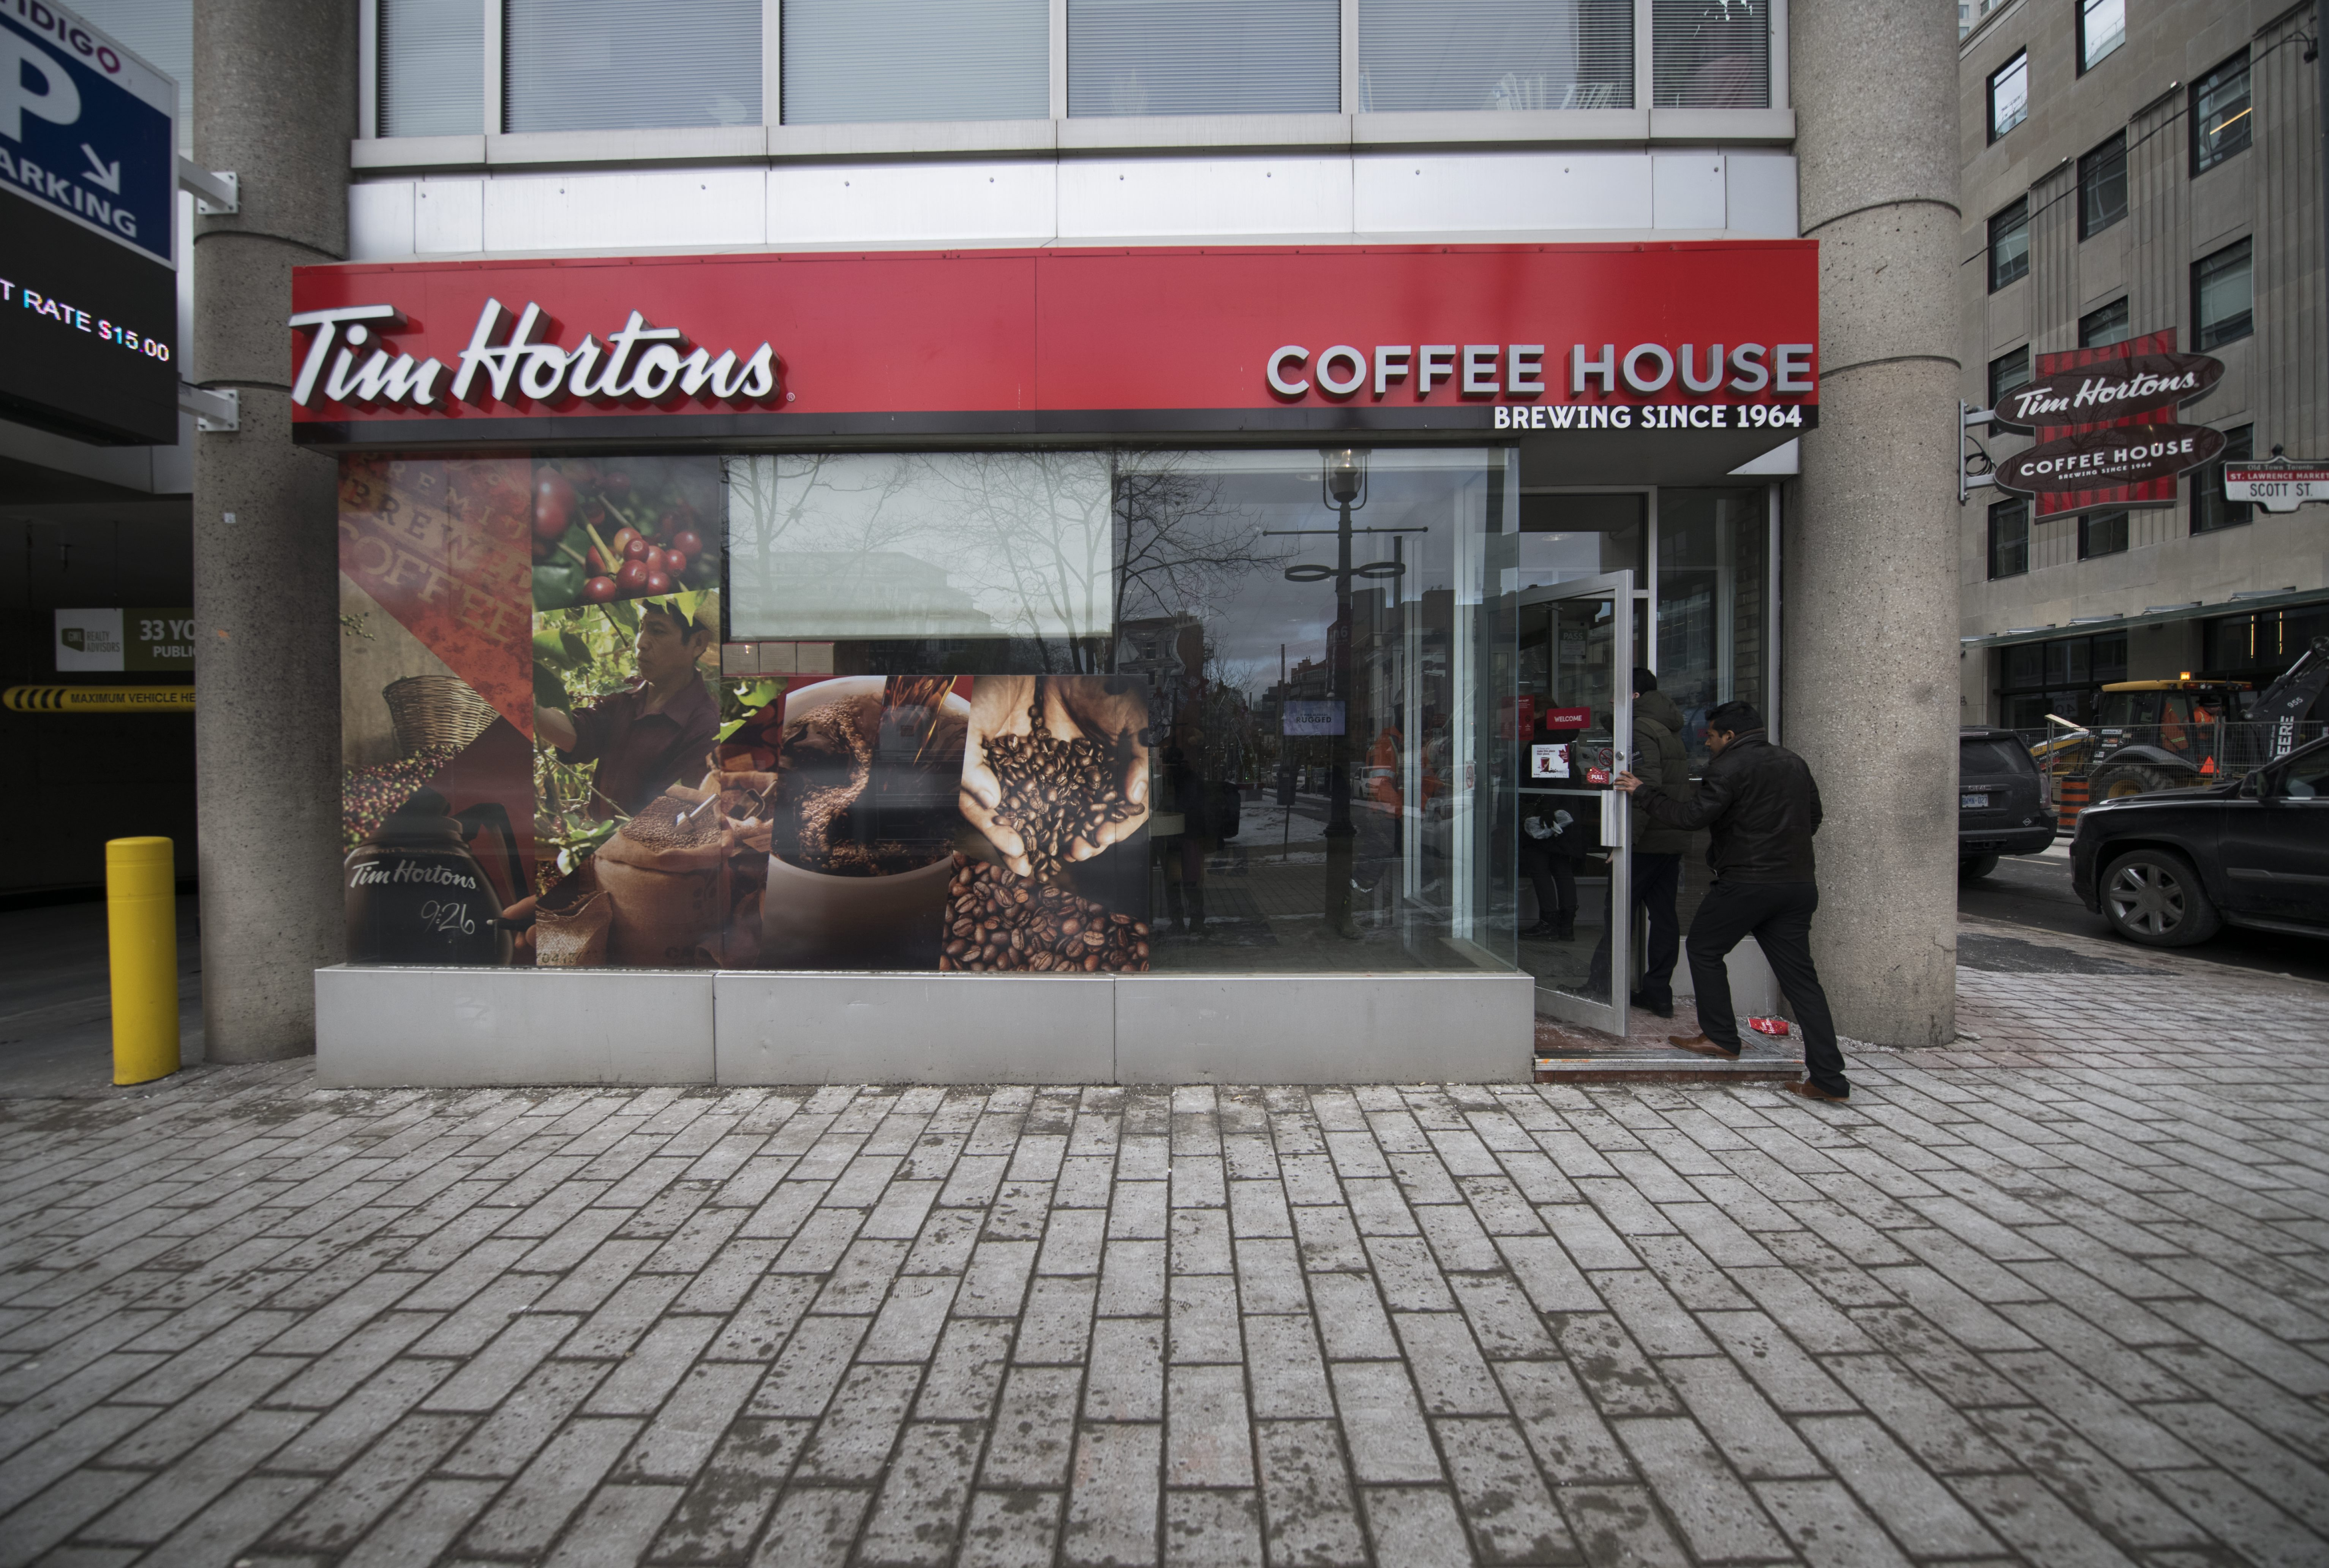 What is happening to Tim Hortons?